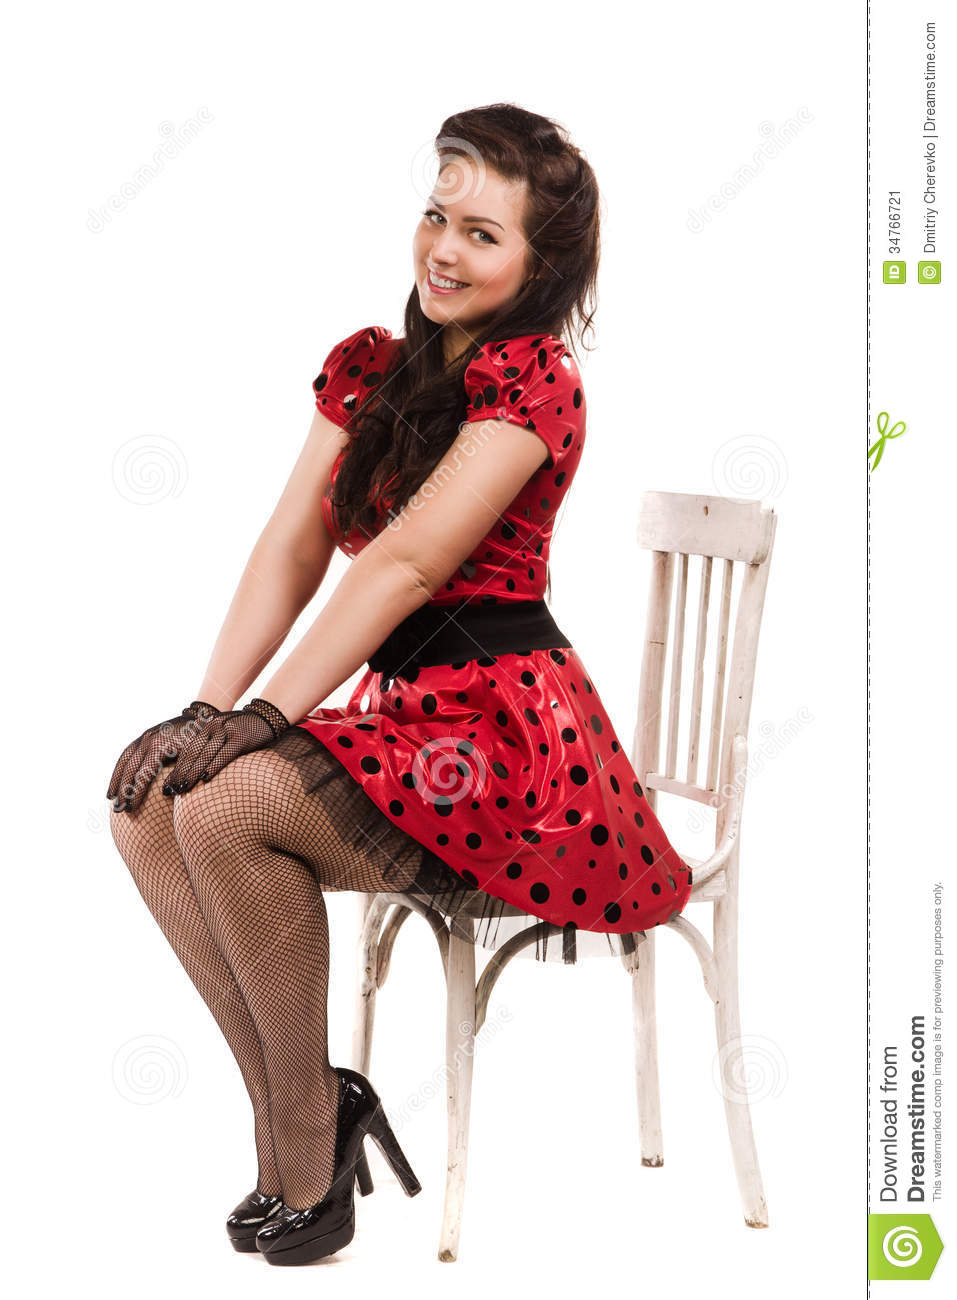 attractive pin up girl stock image image 34766721. Black Bedroom Furniture Sets. Home Design Ideas